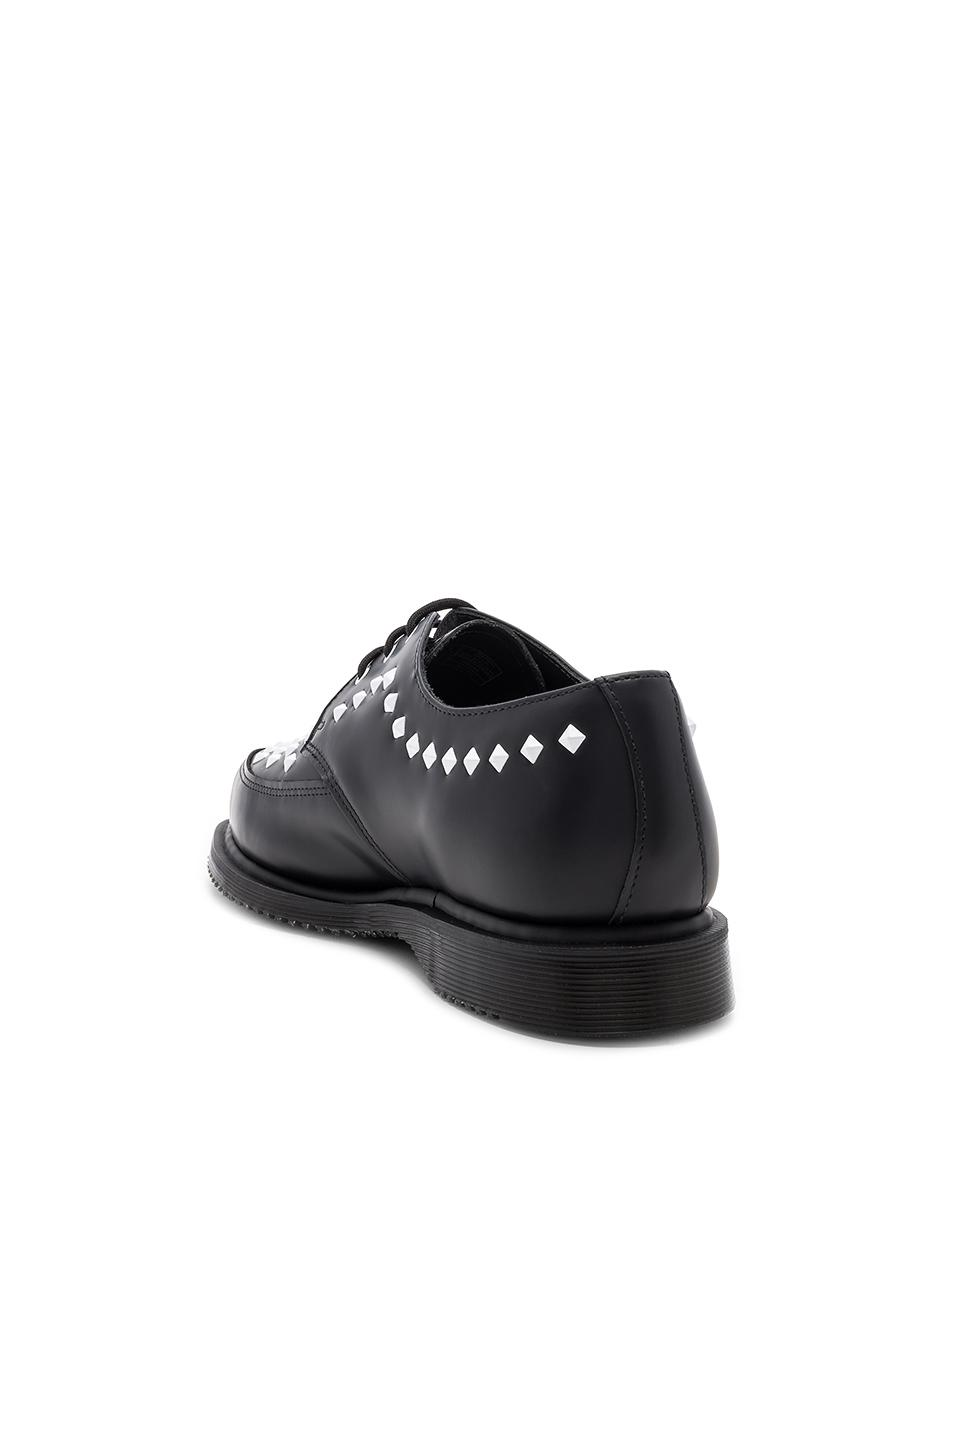 Dr. Martens Smooth Leather Rousden Stud Creepers in . hhuCaKHi